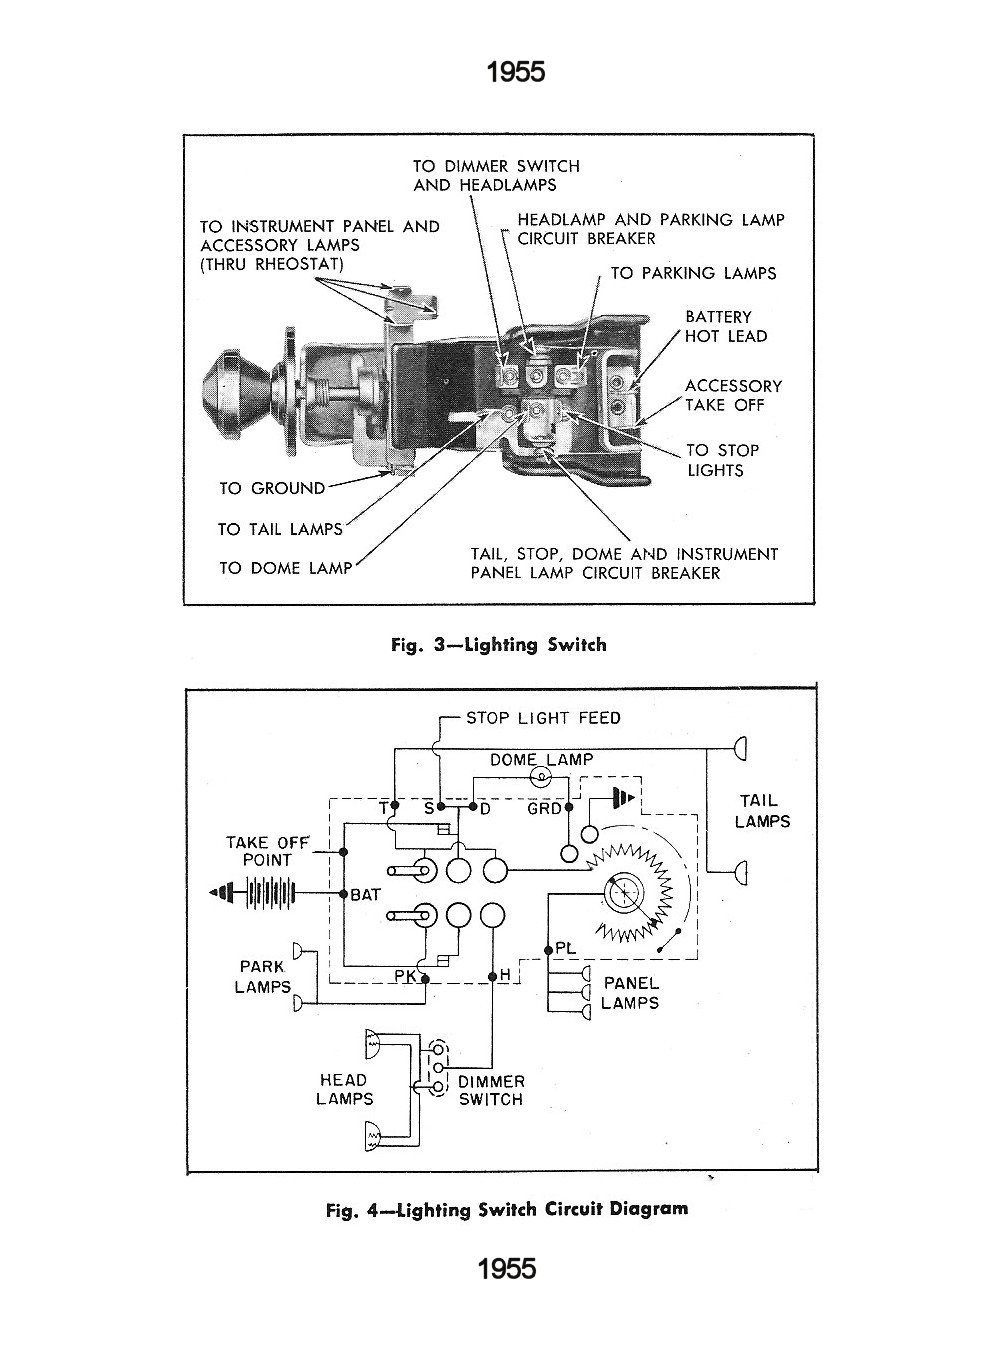 55csm1204a wiring diagram headlight switch 55 chevrolet readingrat net 1956 chevy wiring diagram at readyjetset.co